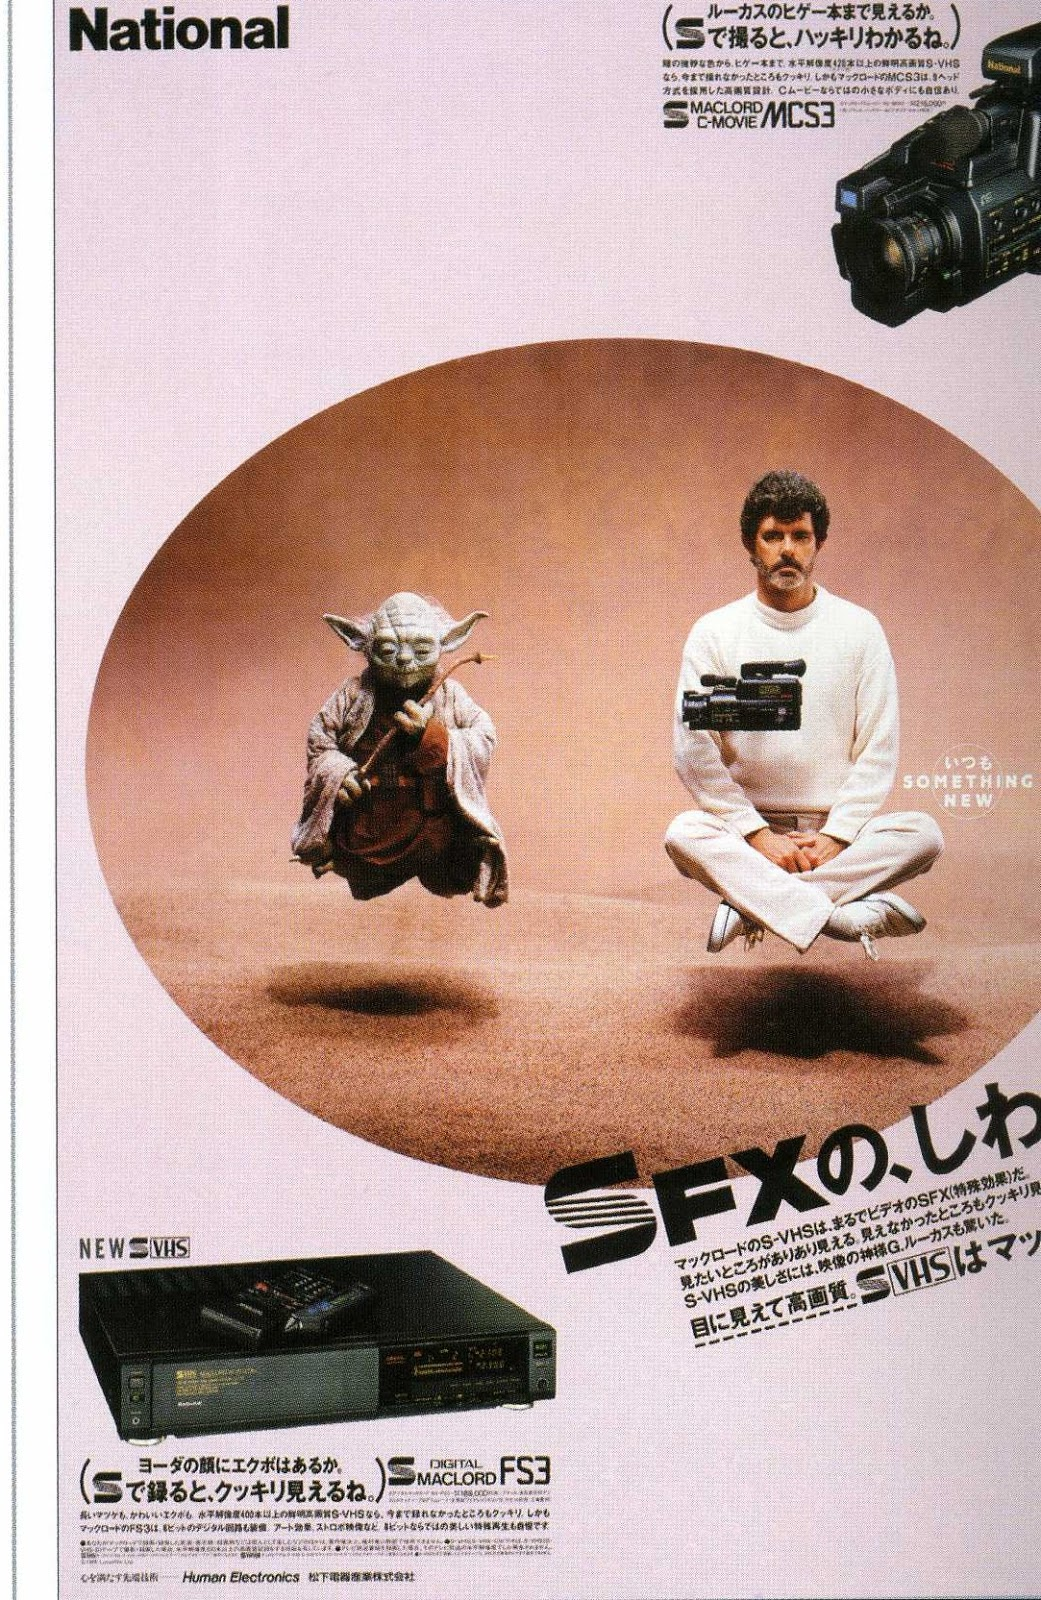 panasonic george lucas advert